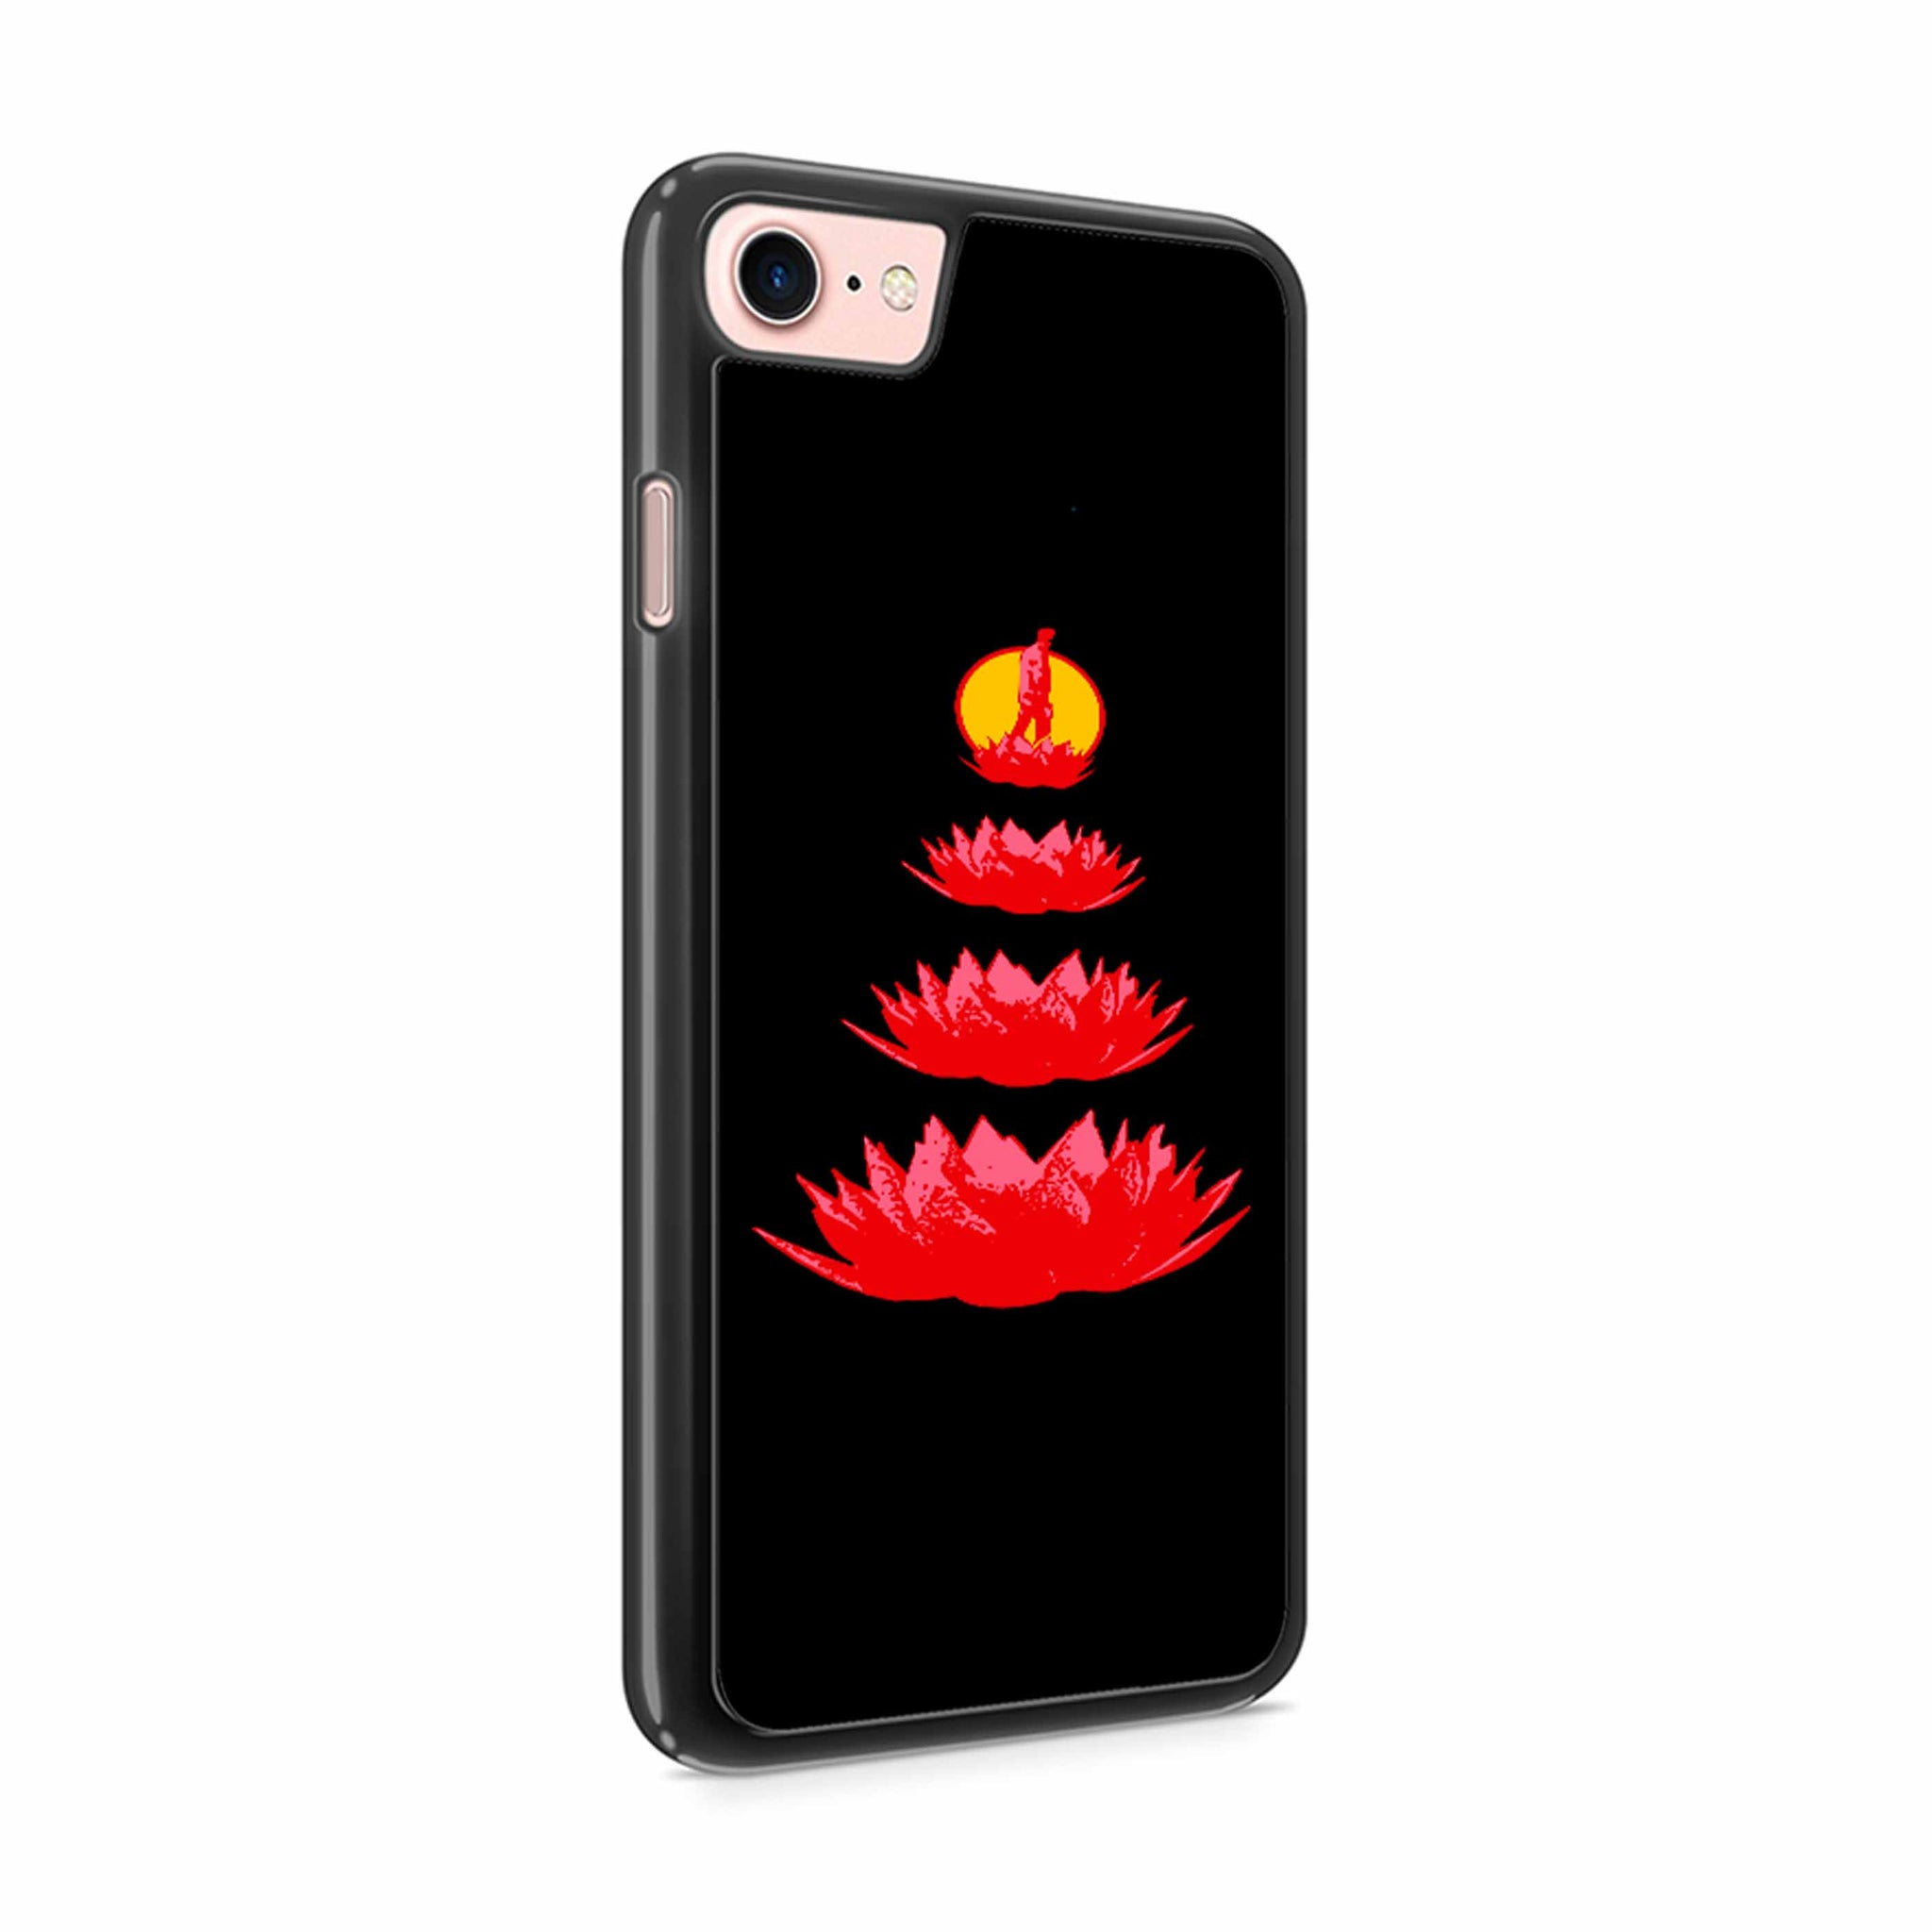 Imagine Dragons Origins Lotus Iphone 7 / 7 Plus / 6 / 6s / 6 Plus / 6S Plus / 5 / 5S / 5C Case